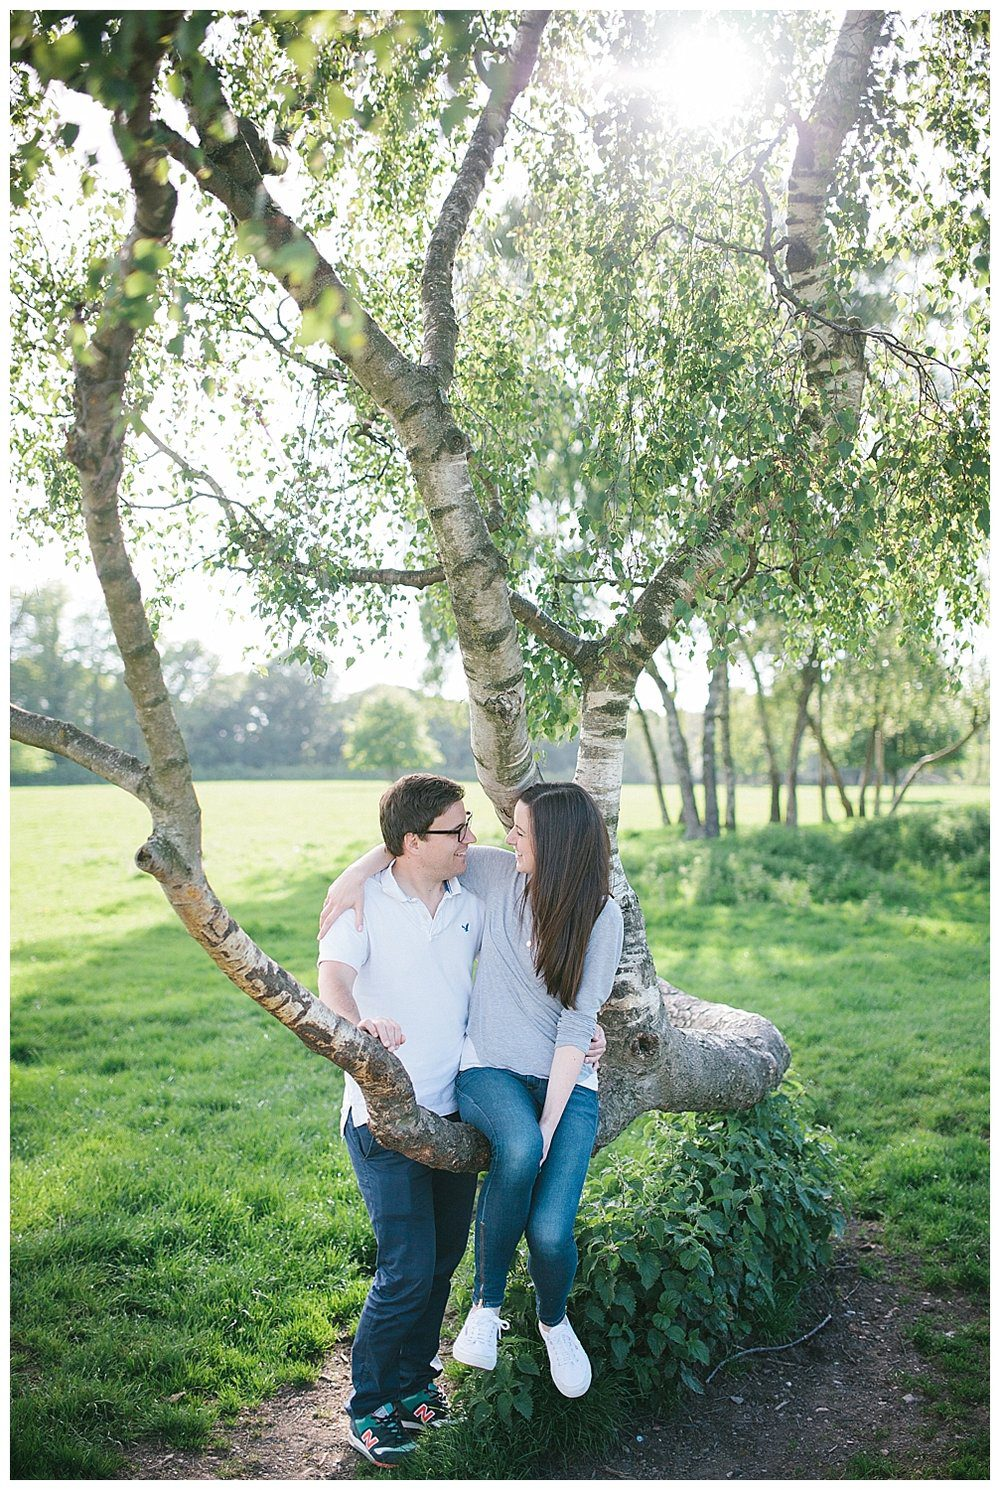 Engagement photography what to wear - cool blues and greys.